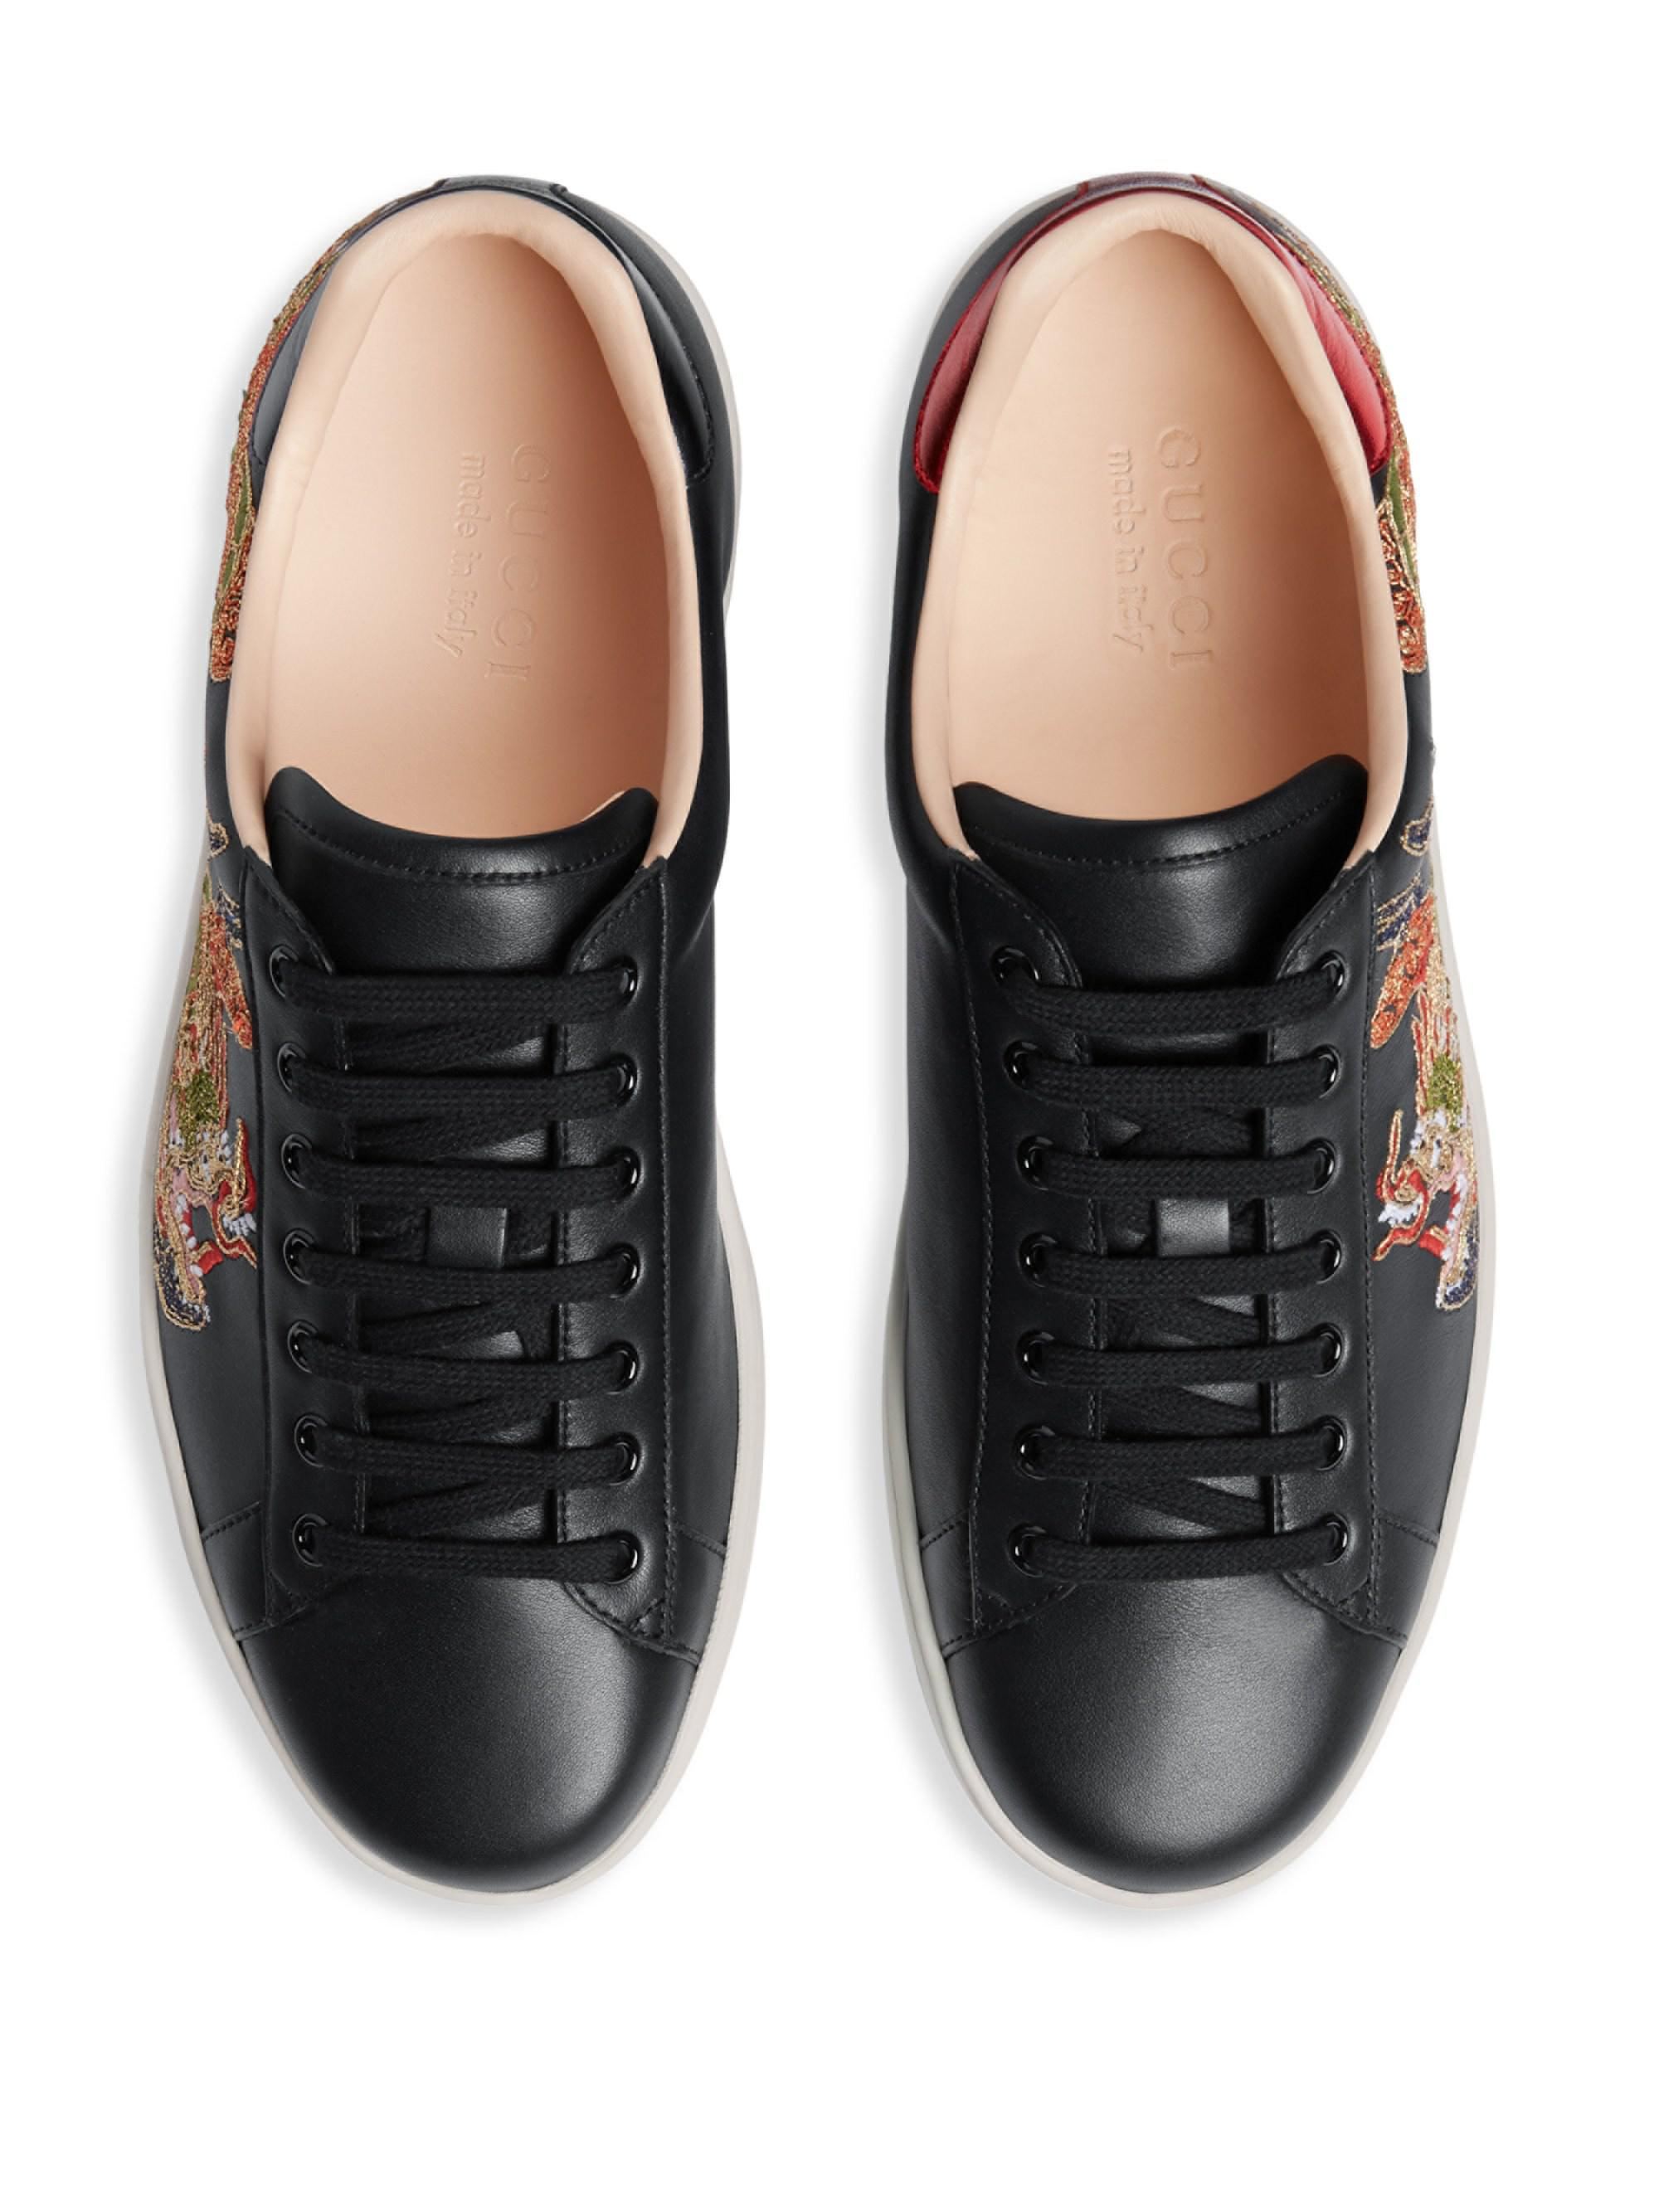 8206b503ebf Lyst - Gucci New Ace Embroidered Sneaker in Black for Men